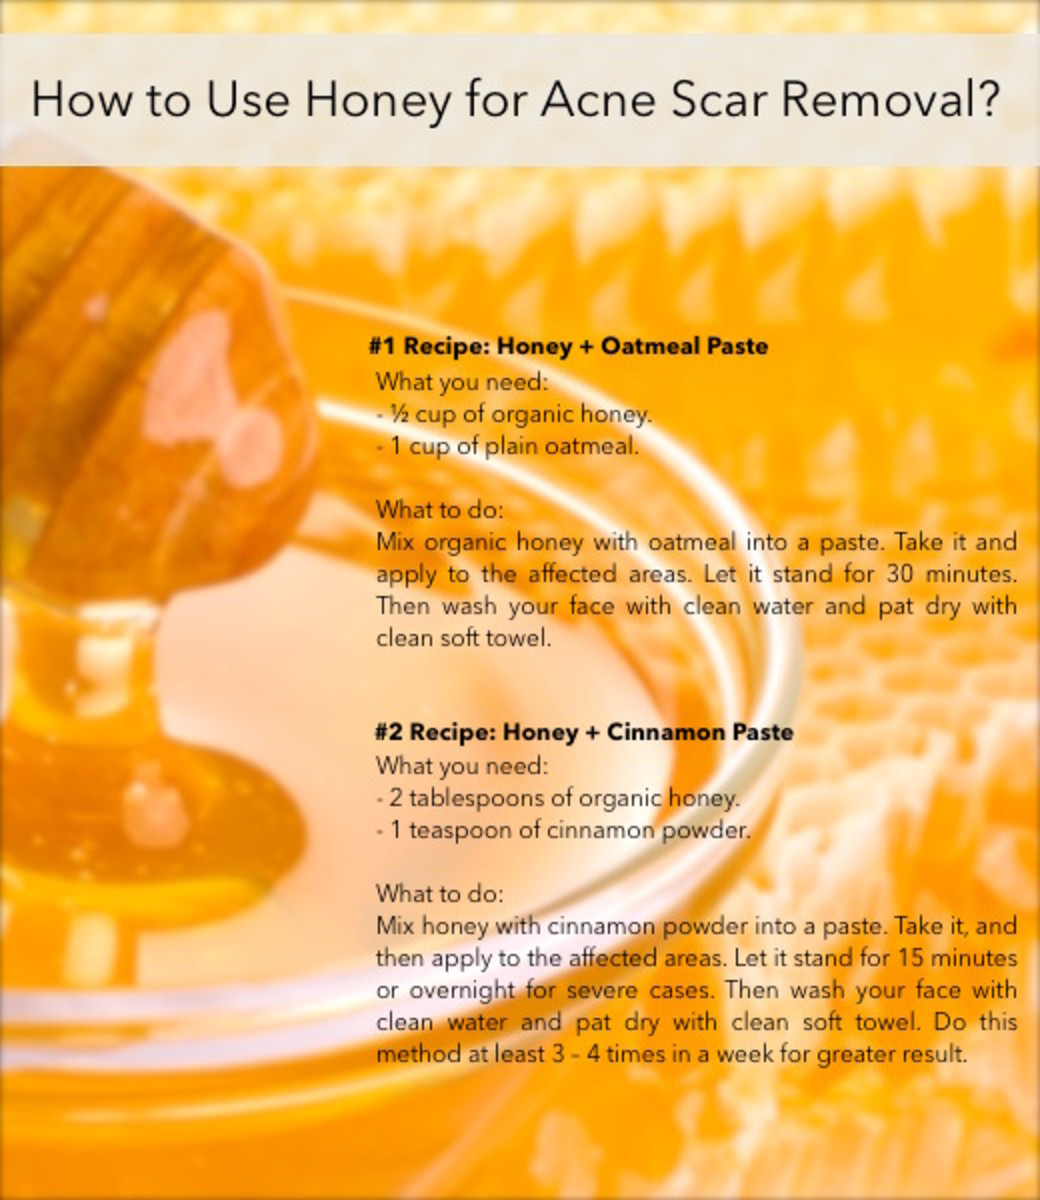 Above are two most popular honey recipes for natural acne scar removal.